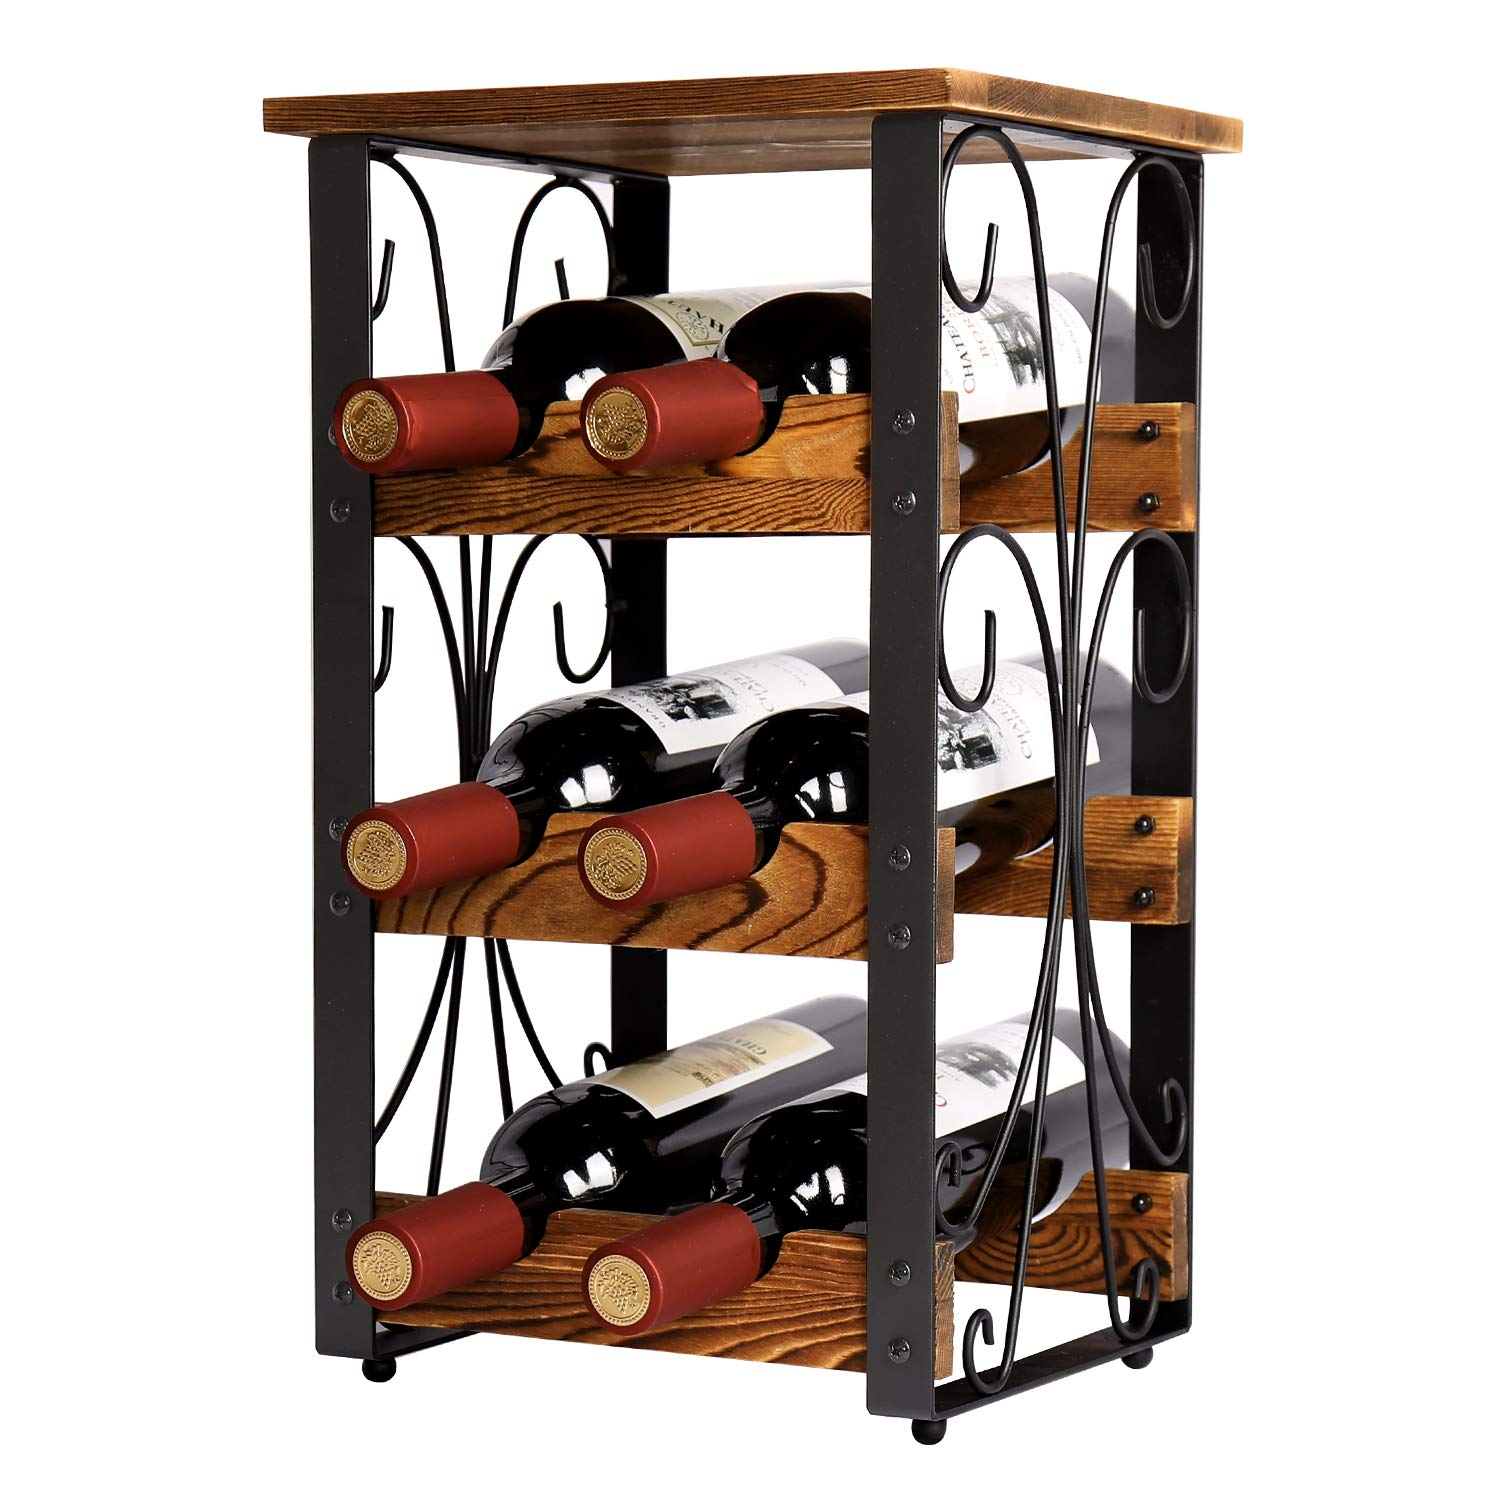 X-cosrack Rustic 6 Bottles Tabletop Wine Rack Freestanding 3 Tier Wine Organizer